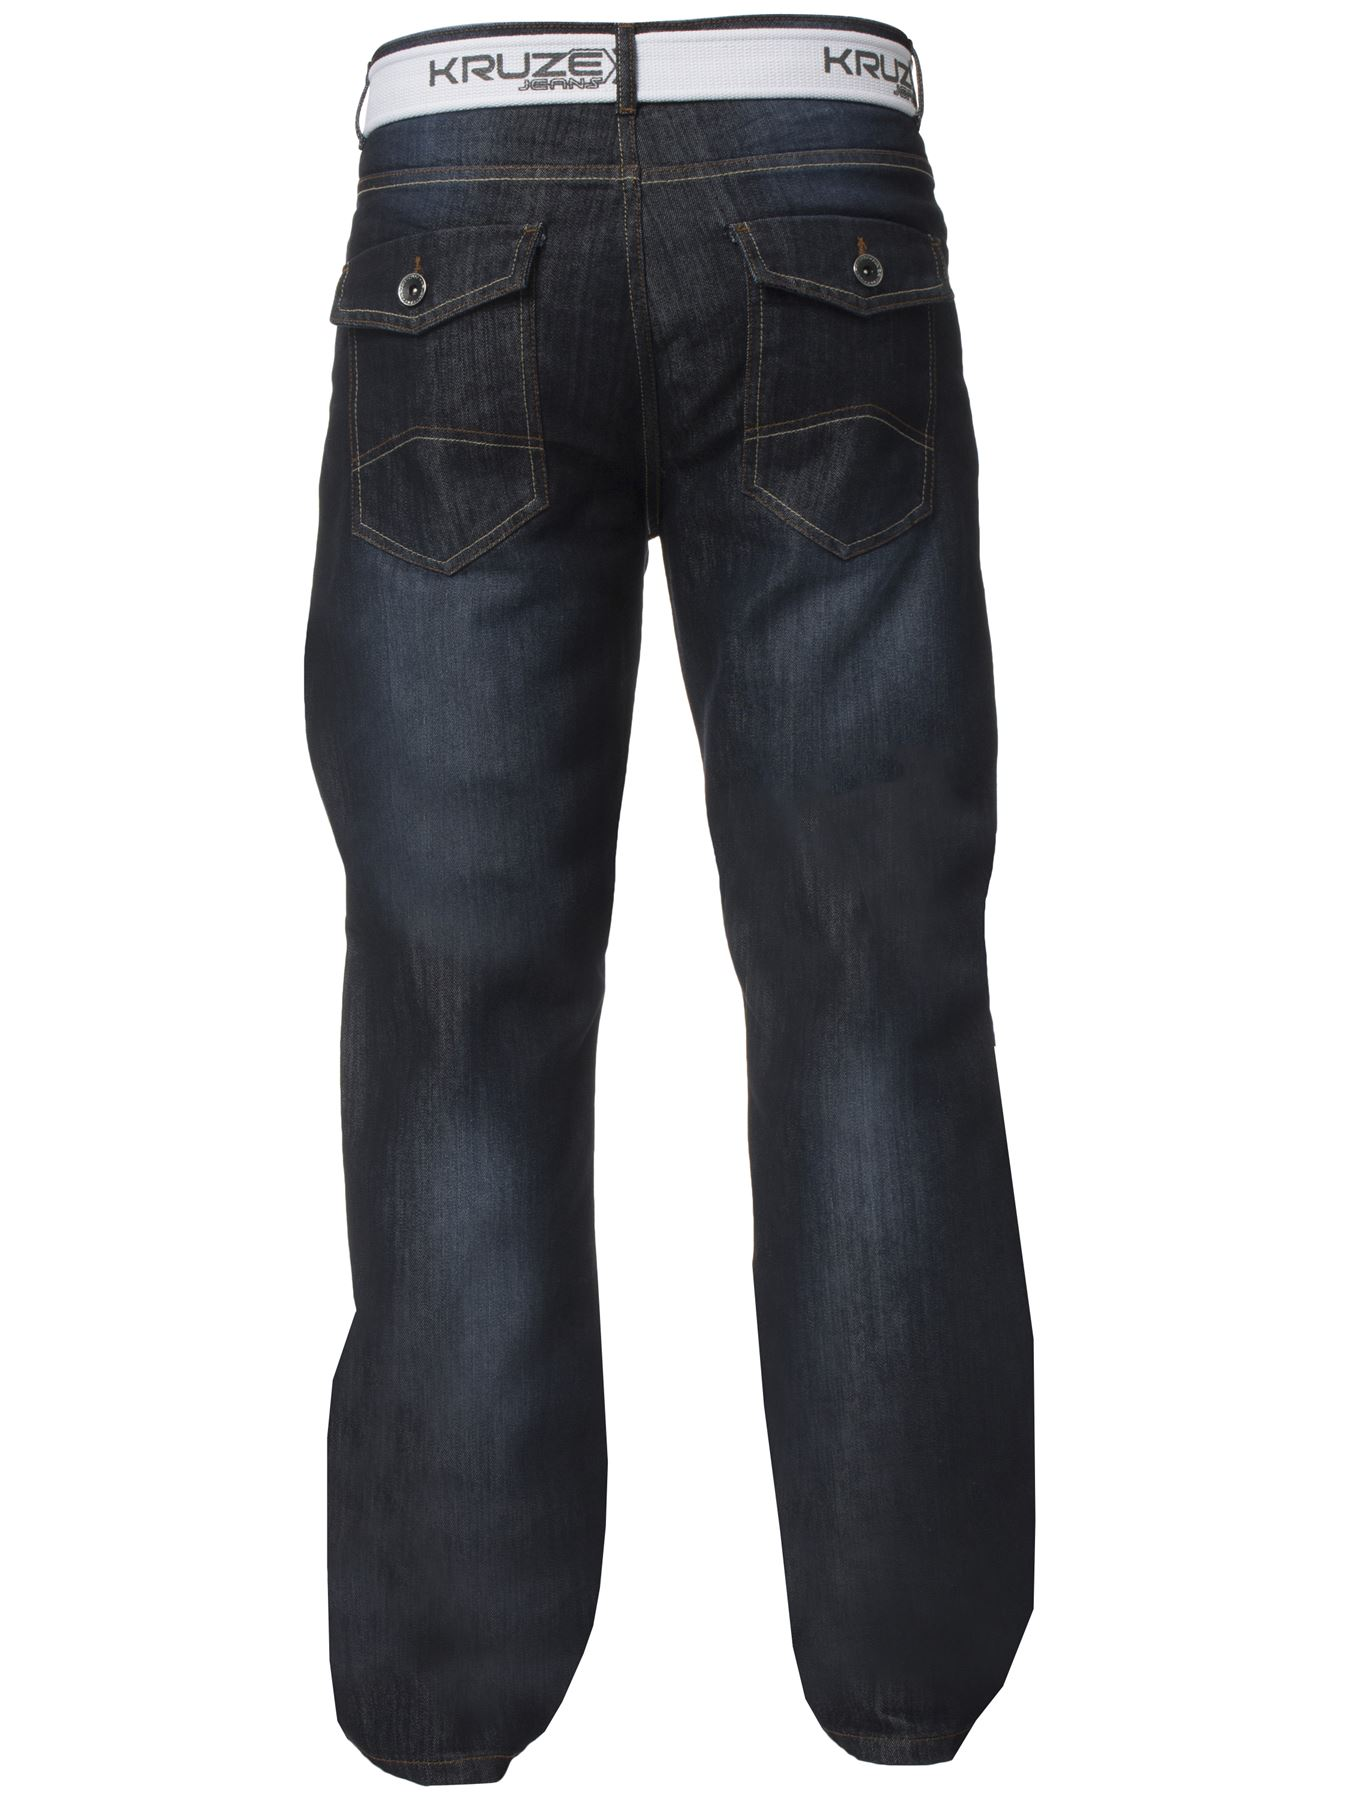 Kruze-Denim-New-Mens-Bootcut-Jeans-Wide-Leg-Flare-Pants-King-Big-All-Waist-Sizes thumbnail 13